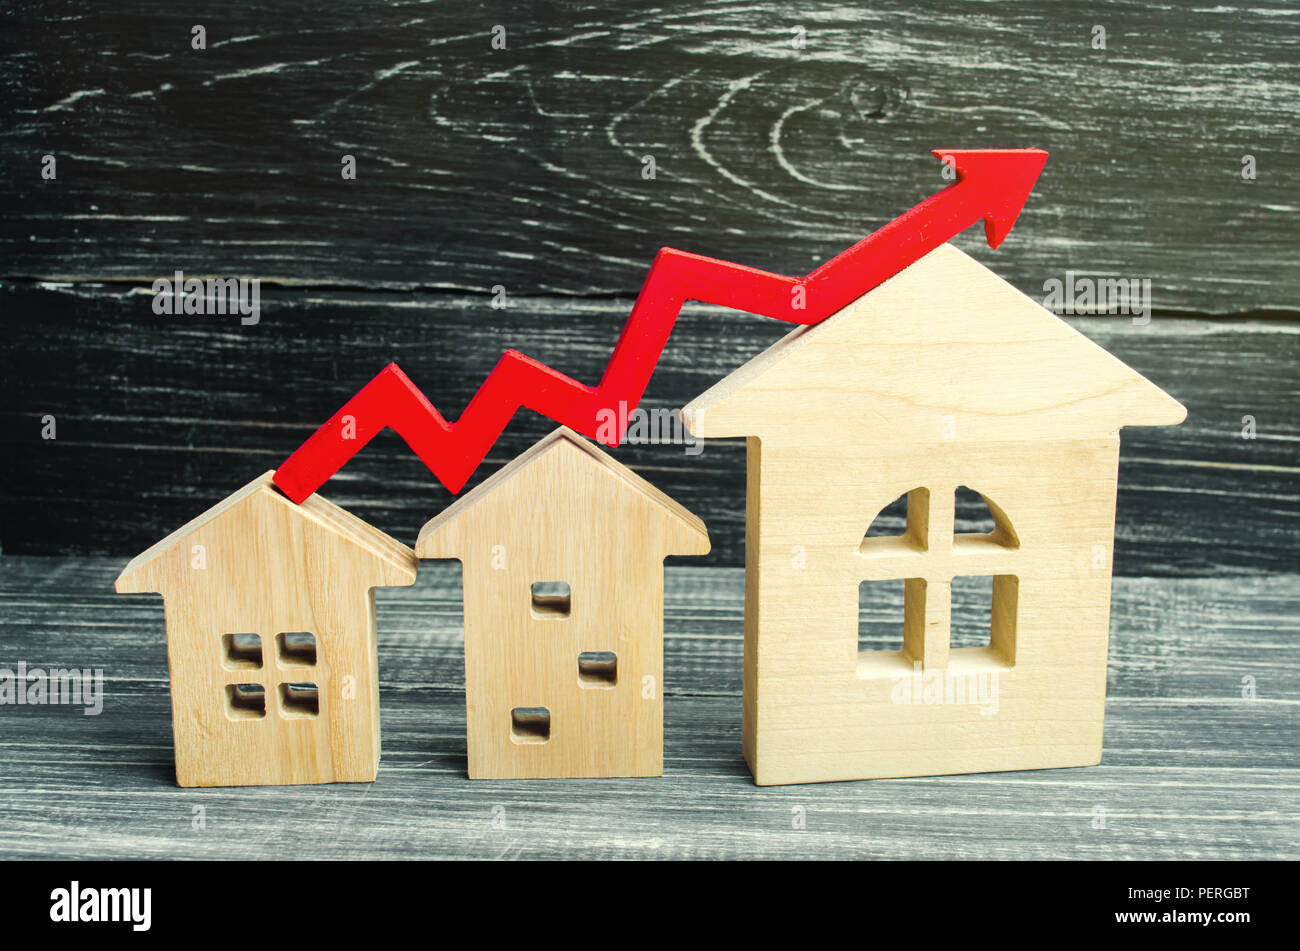 Wooden Houses Stand In A Row From Small To Large With A Red Arrow Up Concept Of High Demand For Real Estate Increase Energy Efficiency Of Housing R Stock Photo Alamy Do not give to italian mobster nor immortal vampires.1/2 dowel not included. alamy